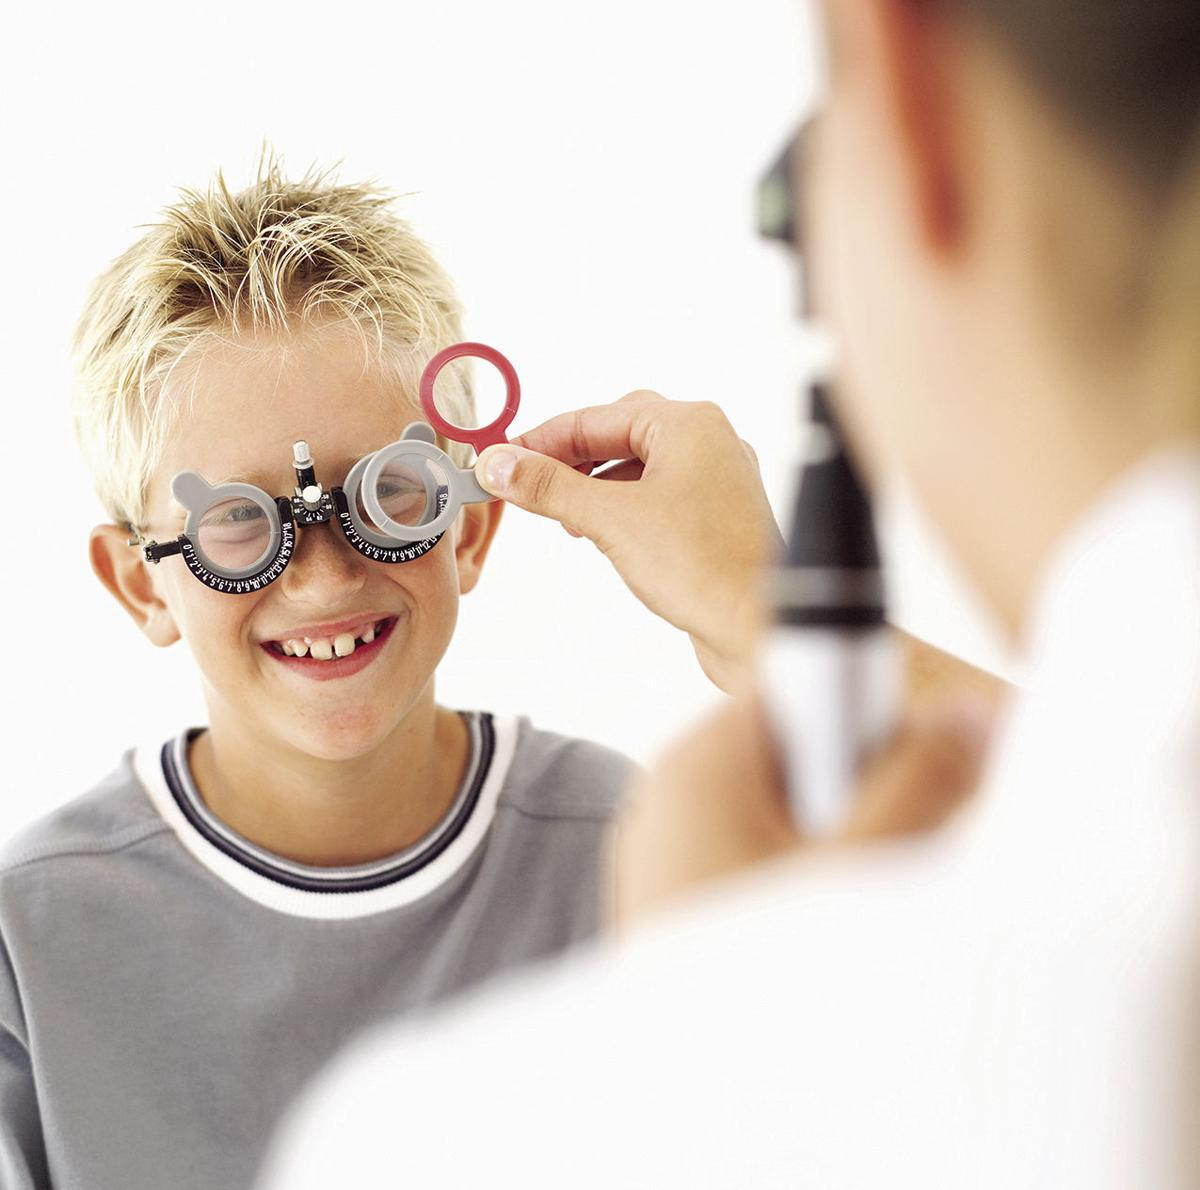 Factors that can put kids at risk of vision problems